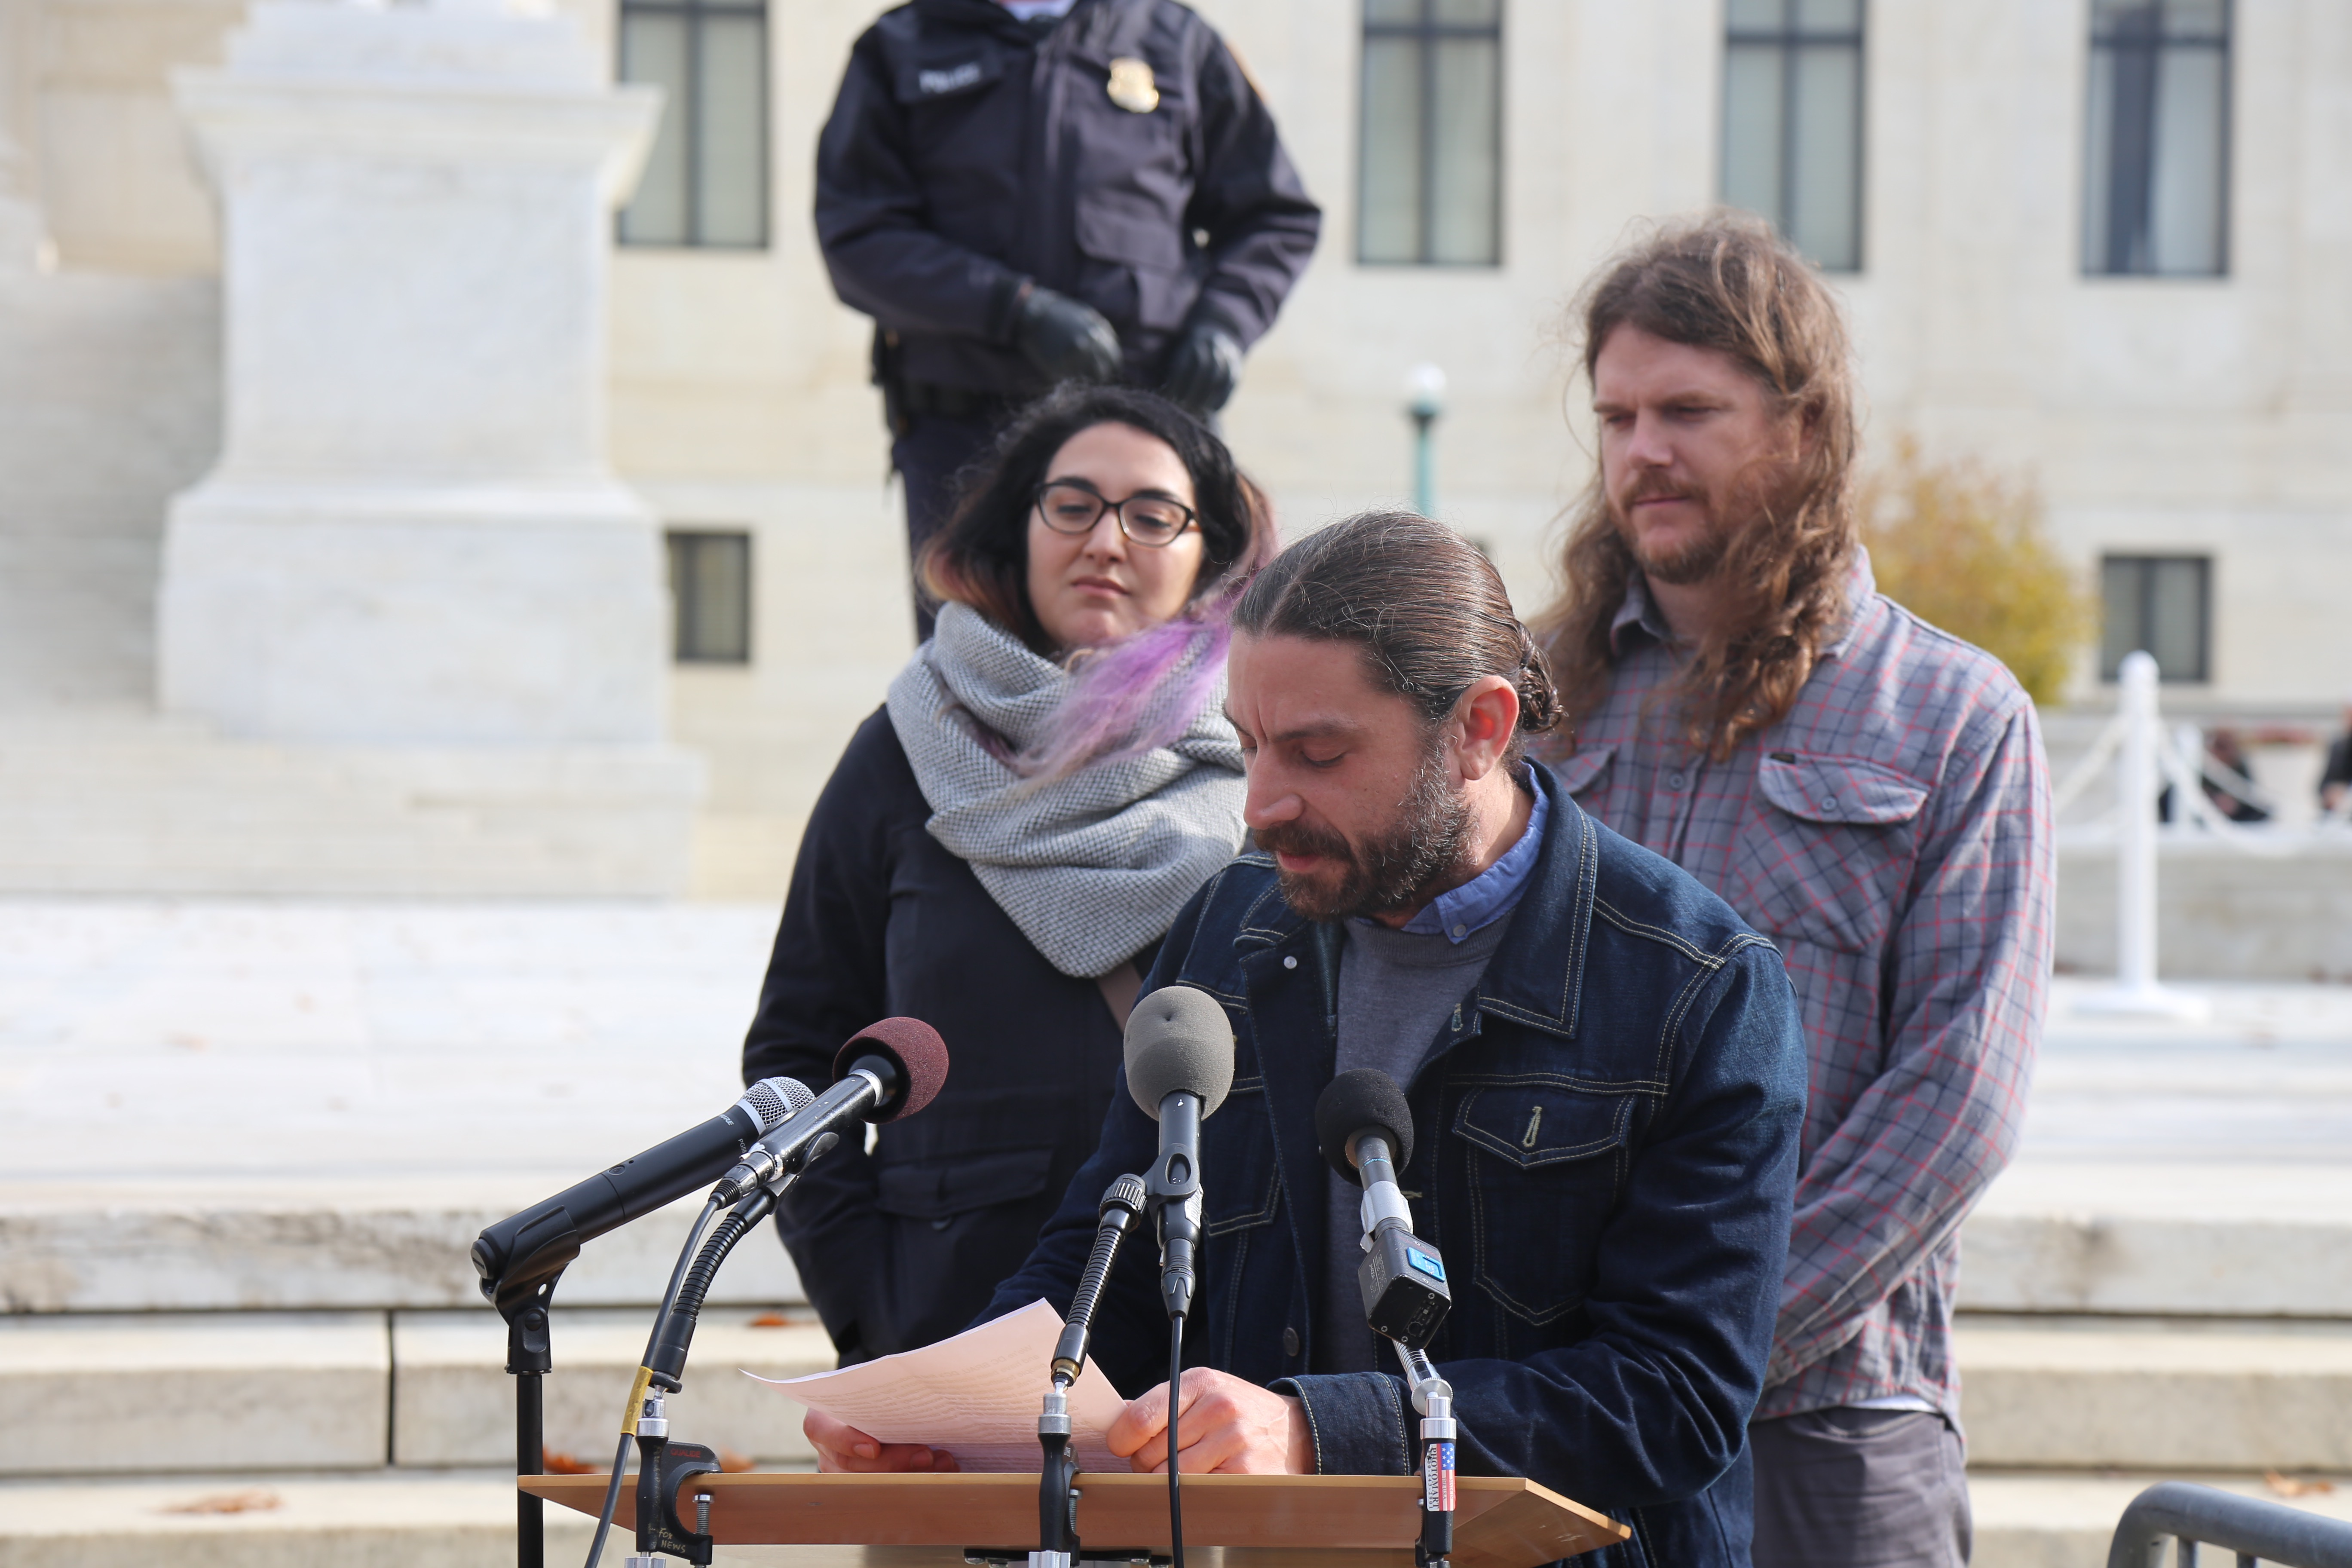 DC Brau Owners Speak at #OpenToAll Rally